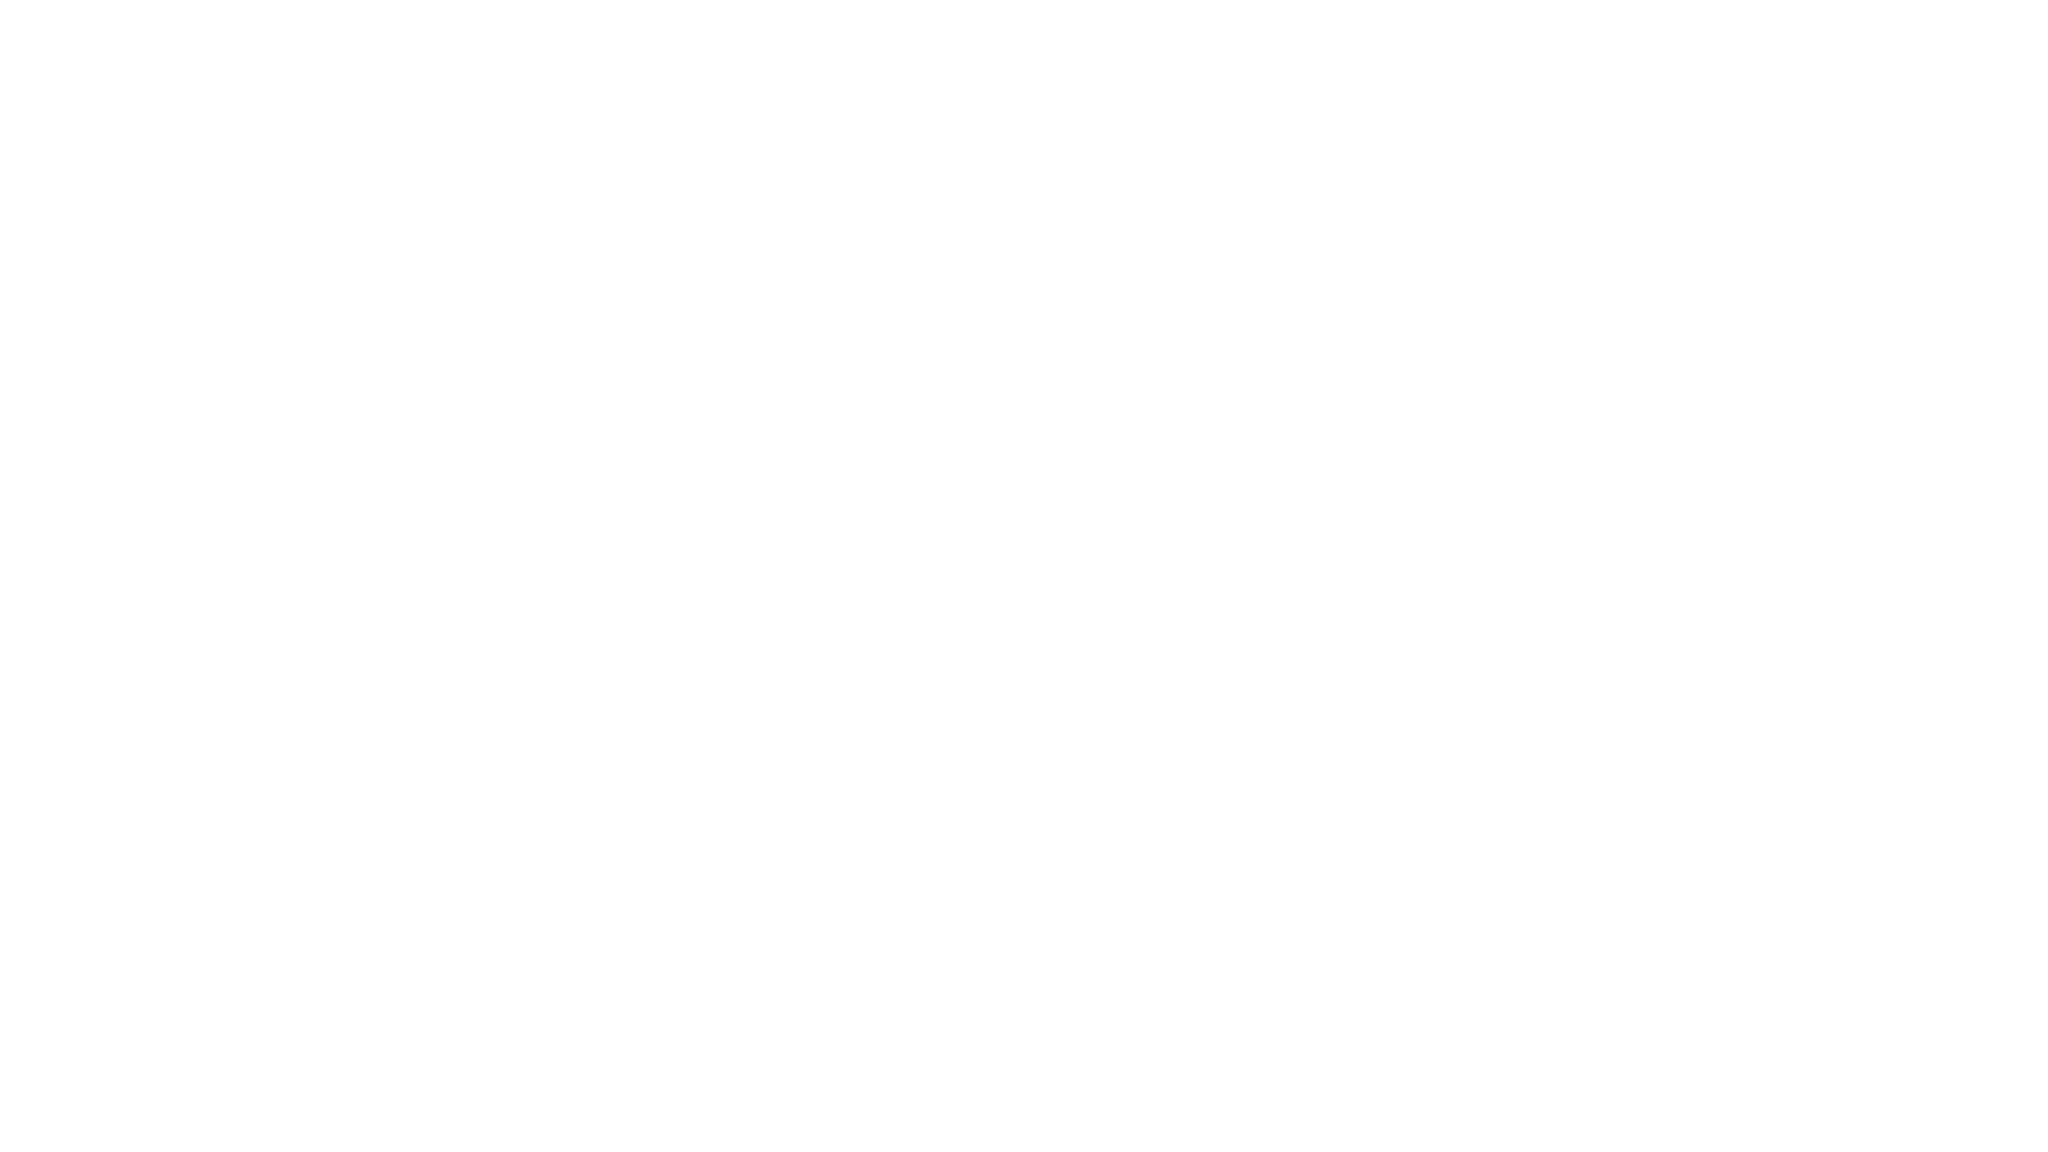 Guide To Best Summer Camps (2019) | America's Finest Summer Camps